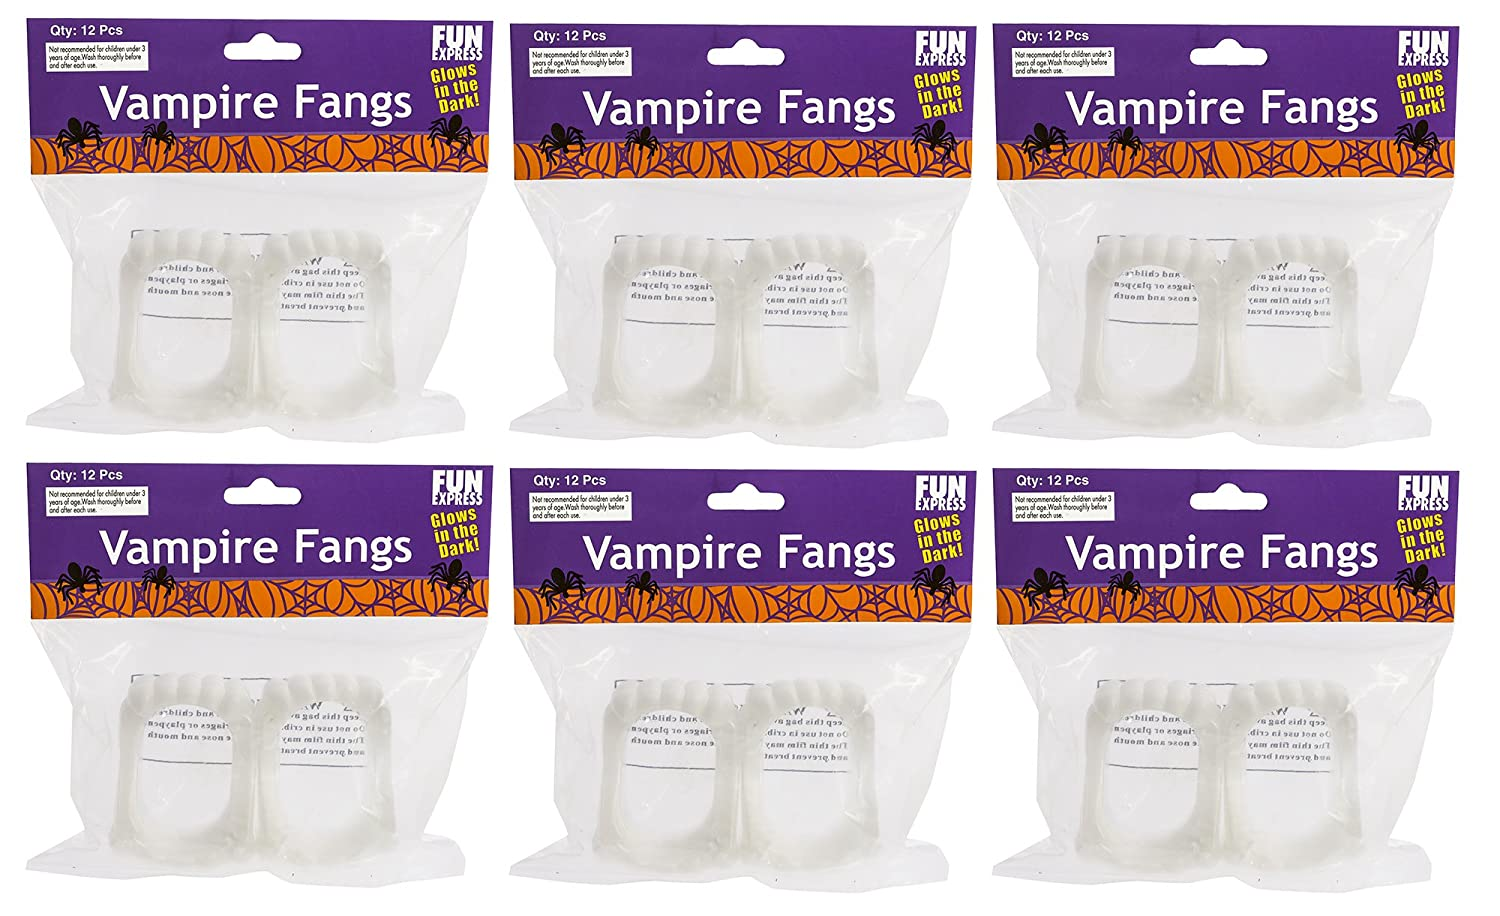 Fun Express - Glow-in-the-Dark Vampire Fangs, (1-Pack of 72) IN-39-402